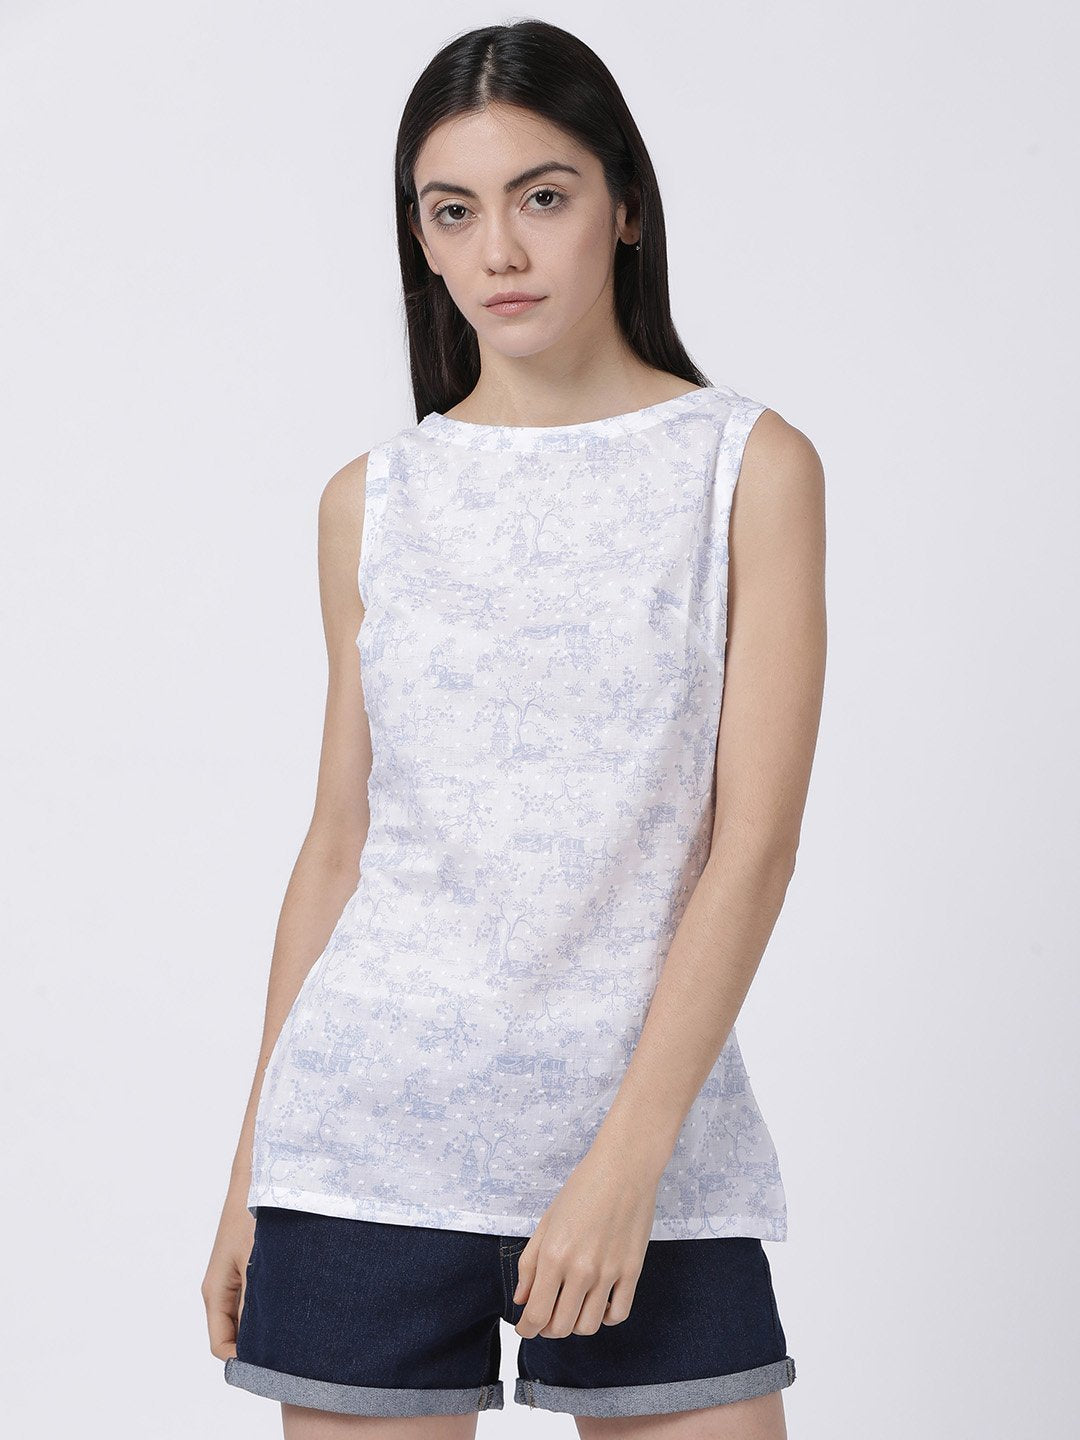 Hakoba Sleeveless Printed Top - Rossbelle